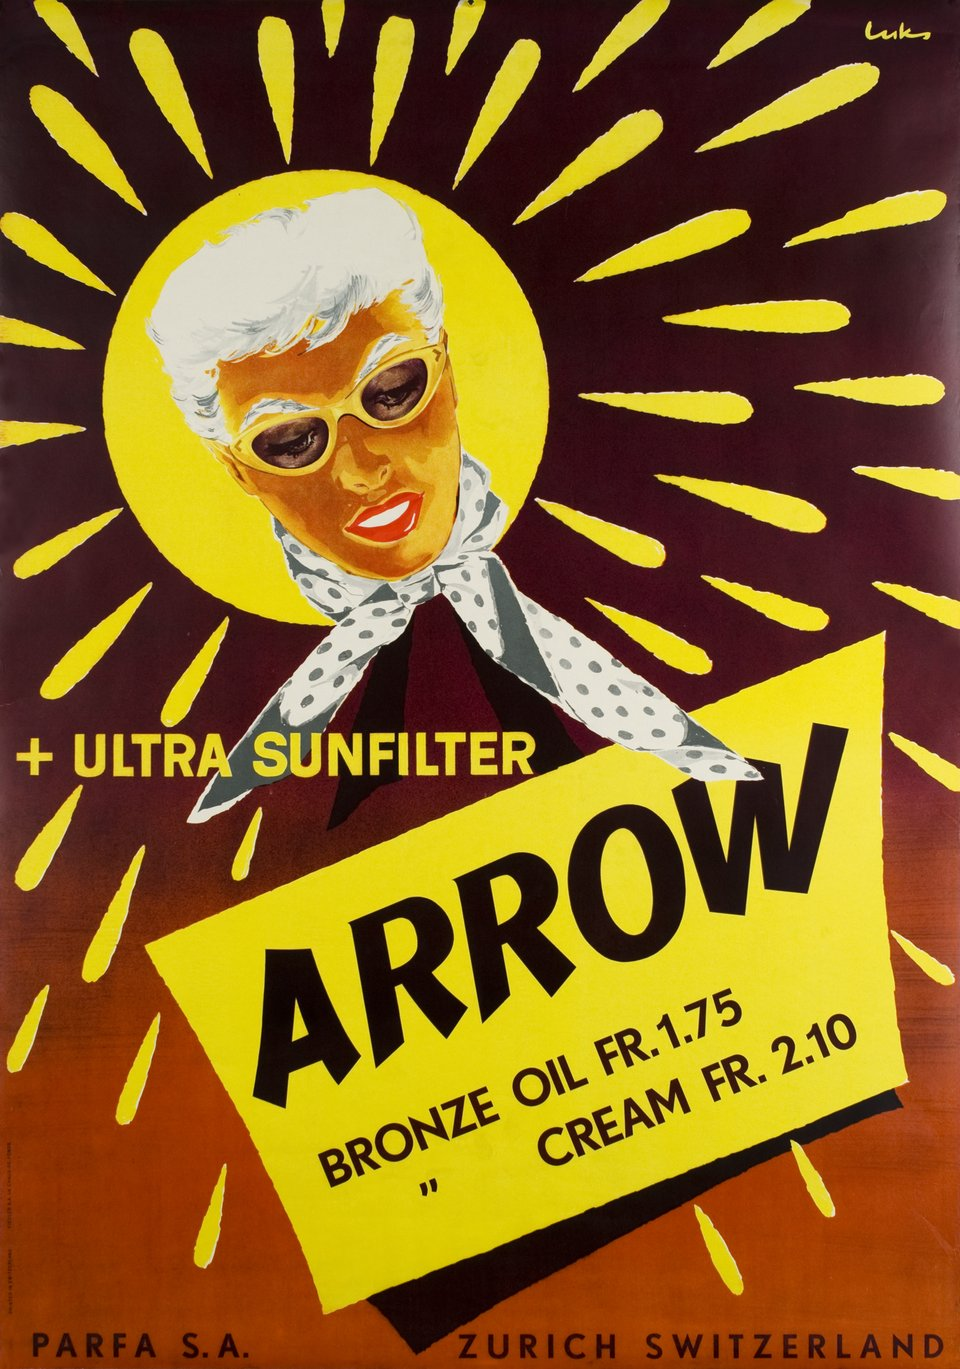 Arrow + Ultra sunfilter – Affiche ancienne –  LUKS – 1950